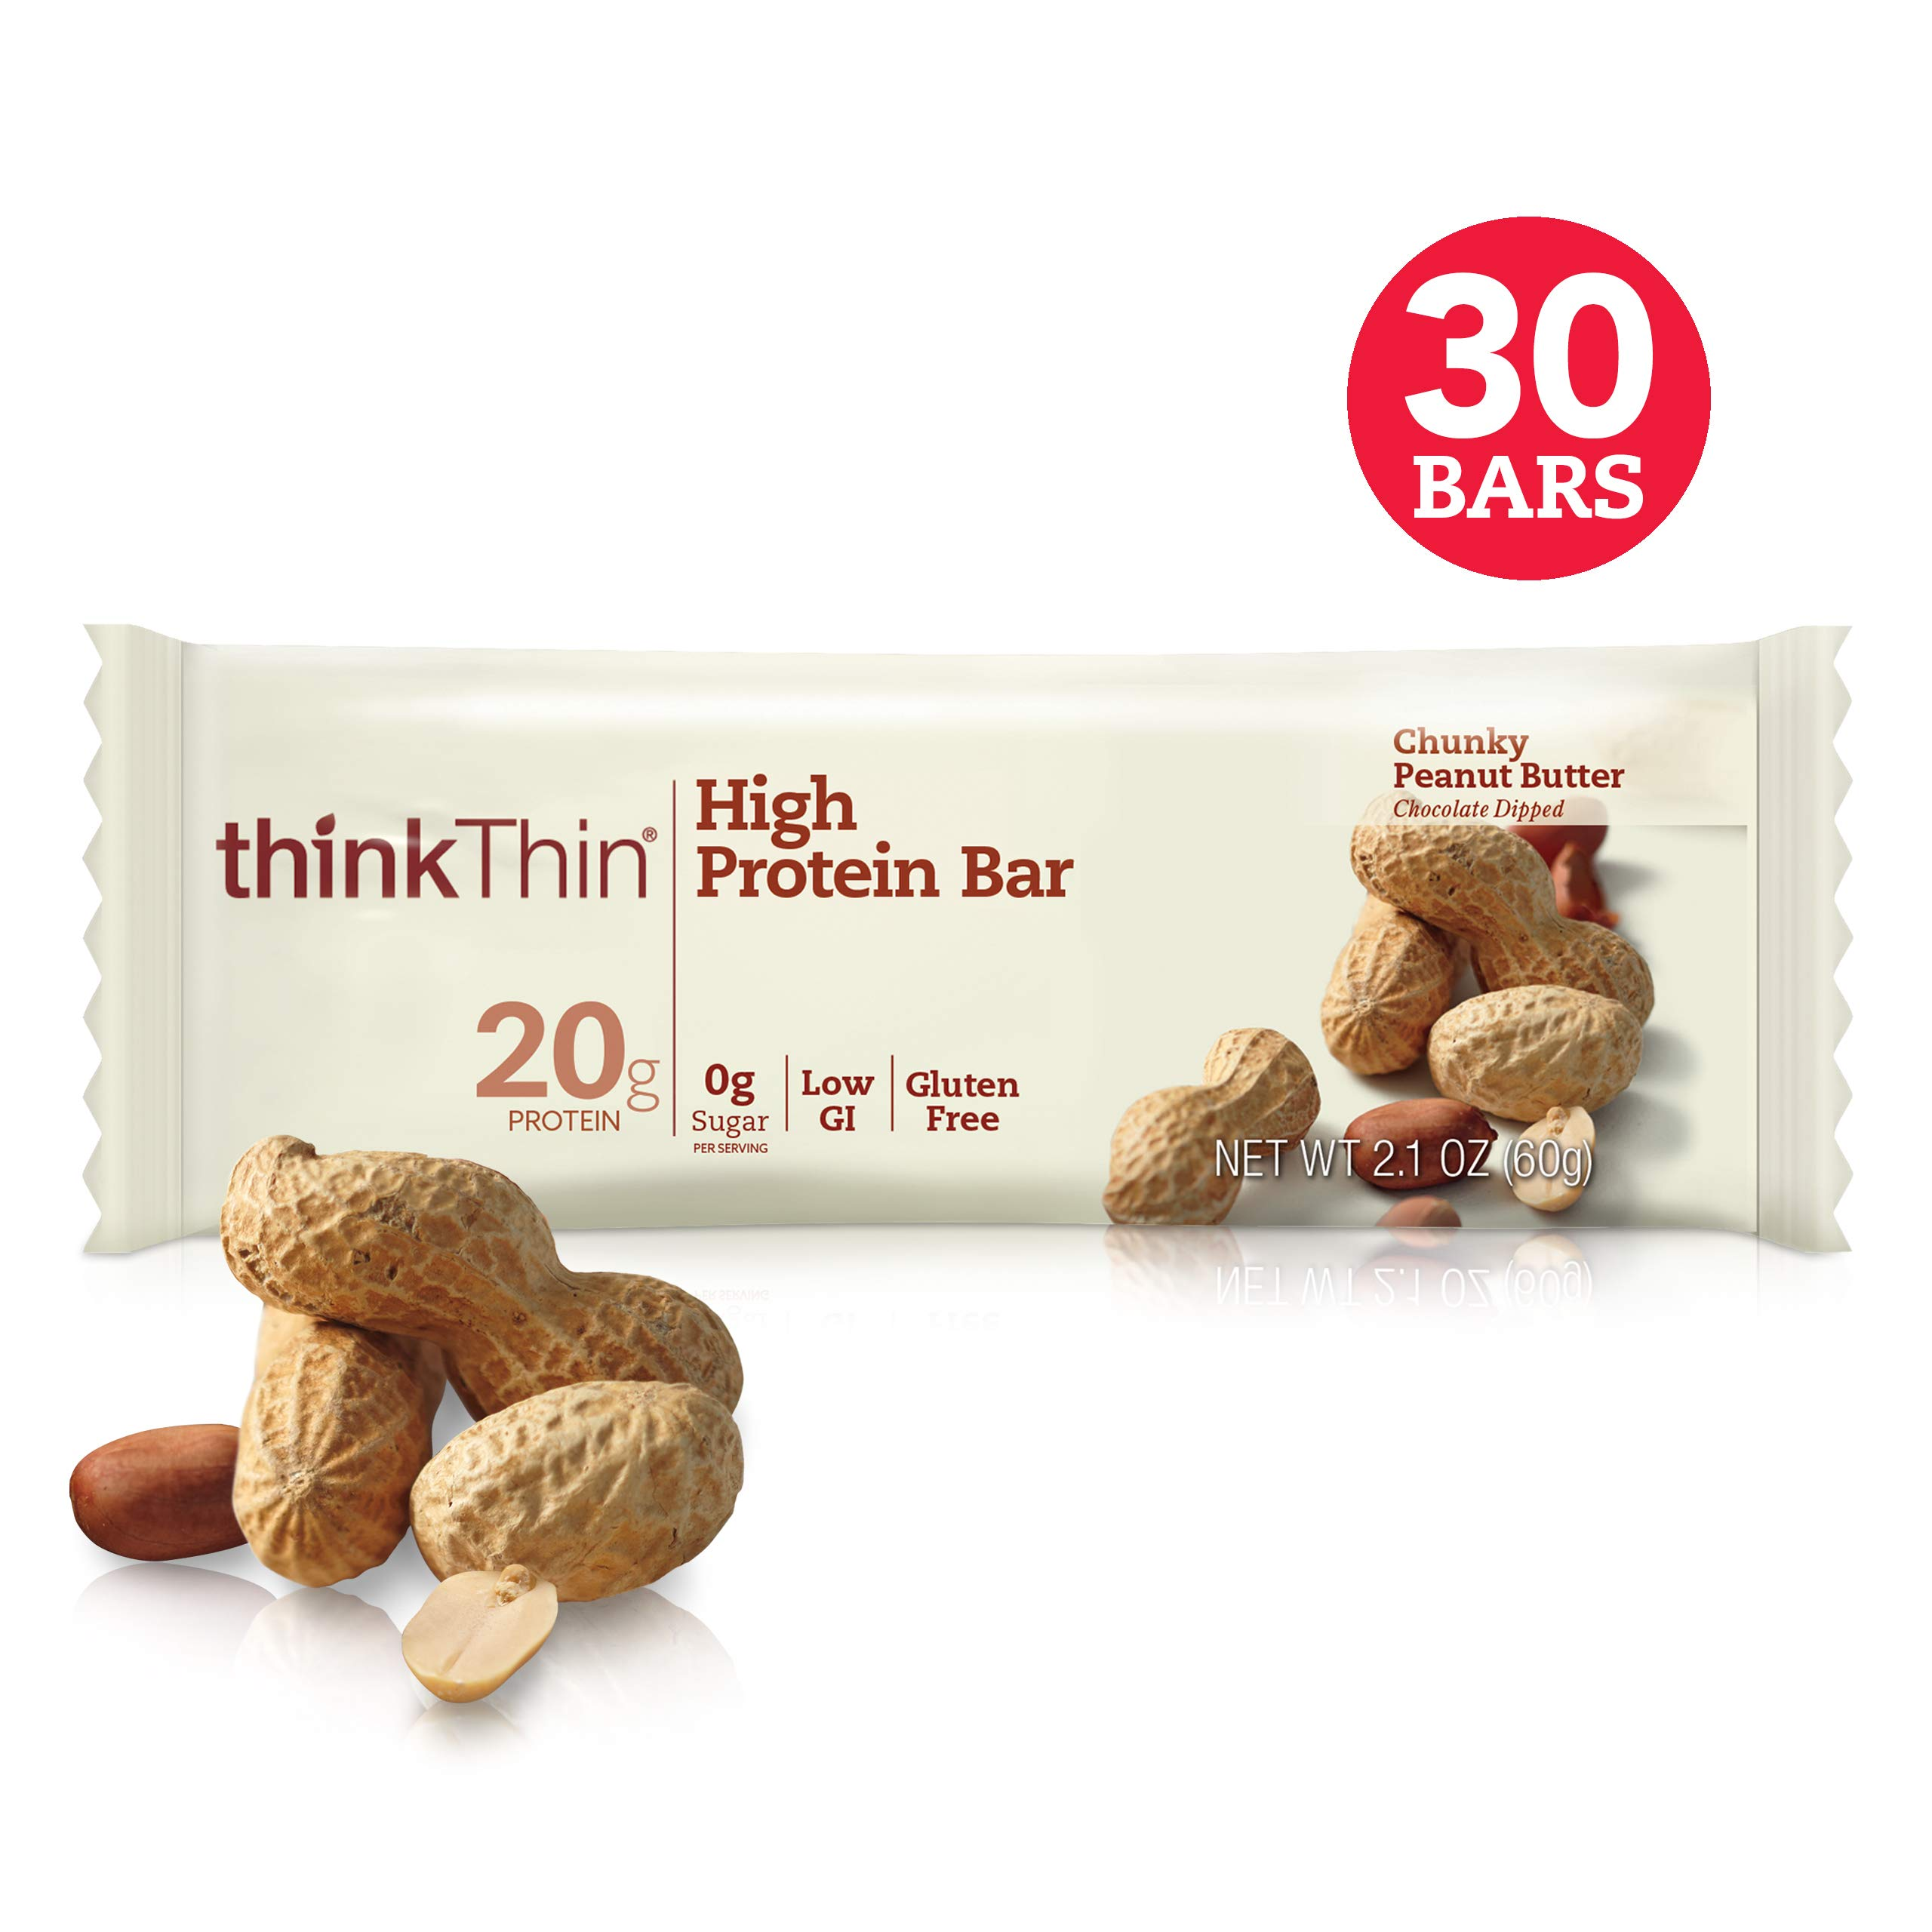 thinkThin High Protein Bars - Chunky Peanut Butter, 20g Protein, 0g Sugar, No Artificial Sweeteners, Gluten Free, GMO Free*, Best Nutritional Snack/Meal bar, 2.1 oz bar (30Count)